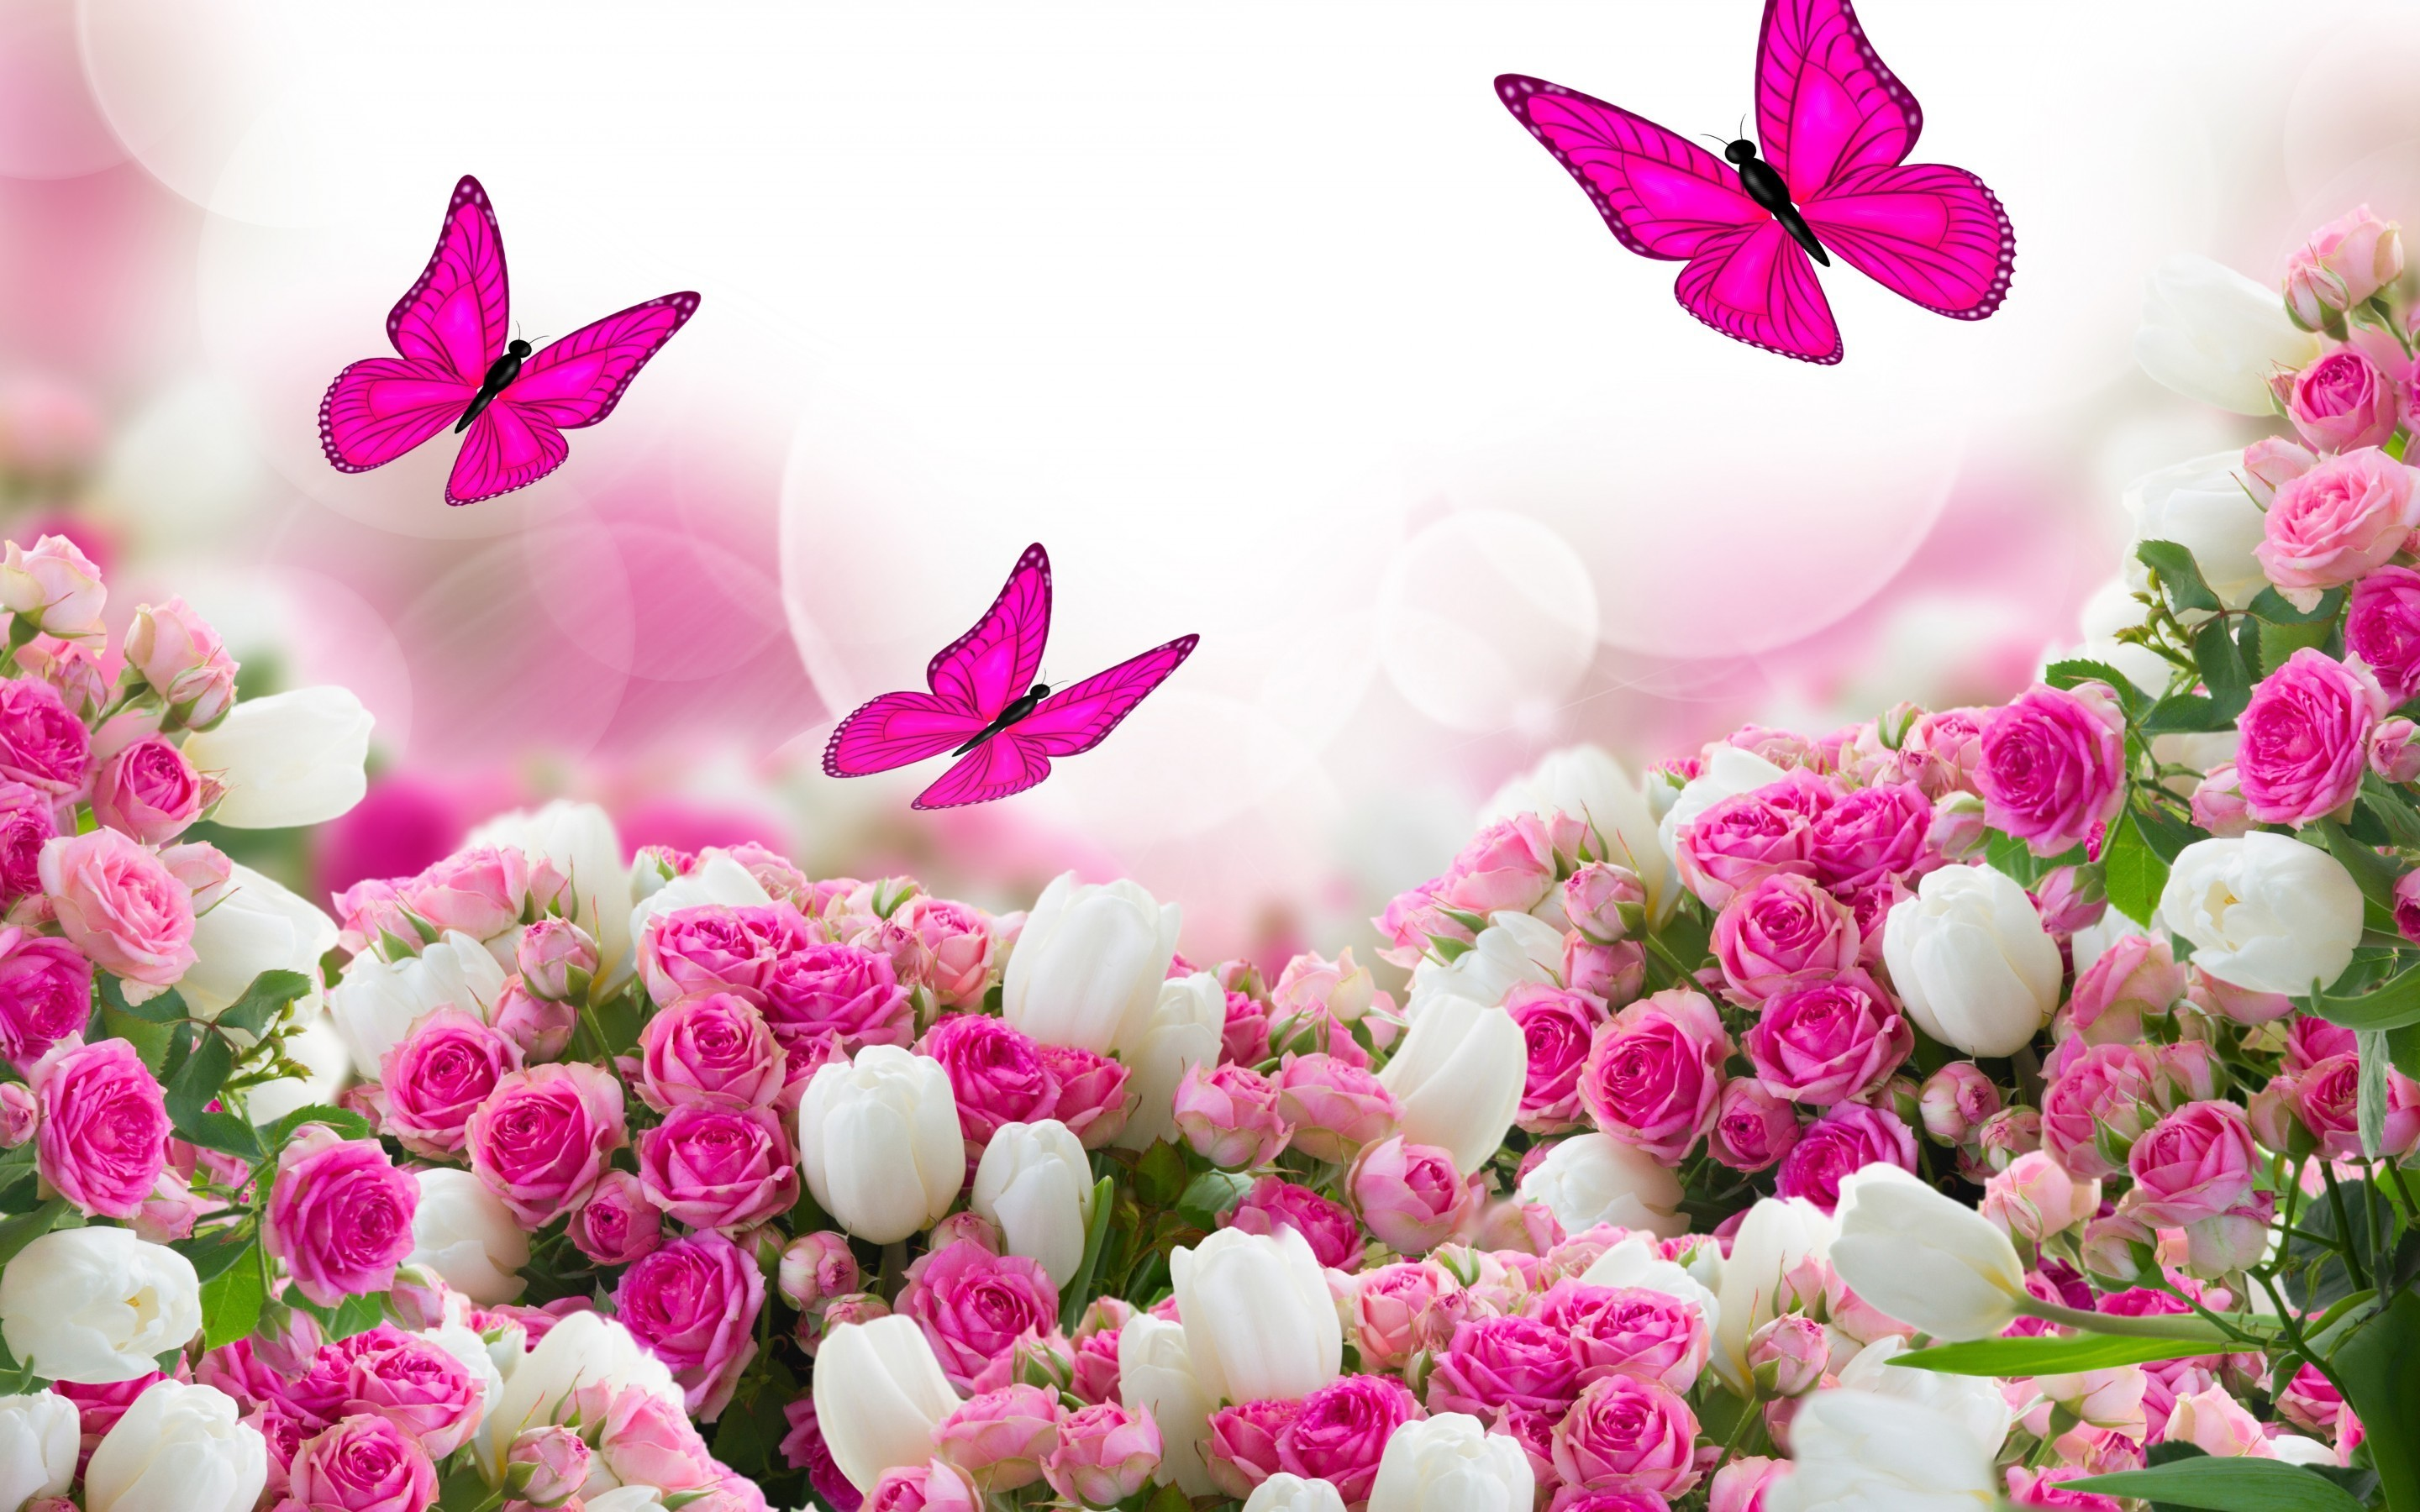 Res: 2880x1800, Fresh pink rose Wallpaper Flowers Nature Wallpapers 2560x1600. 2560x1600  Fresh pink rose Wallpaper Flowers Nature Wallpapers